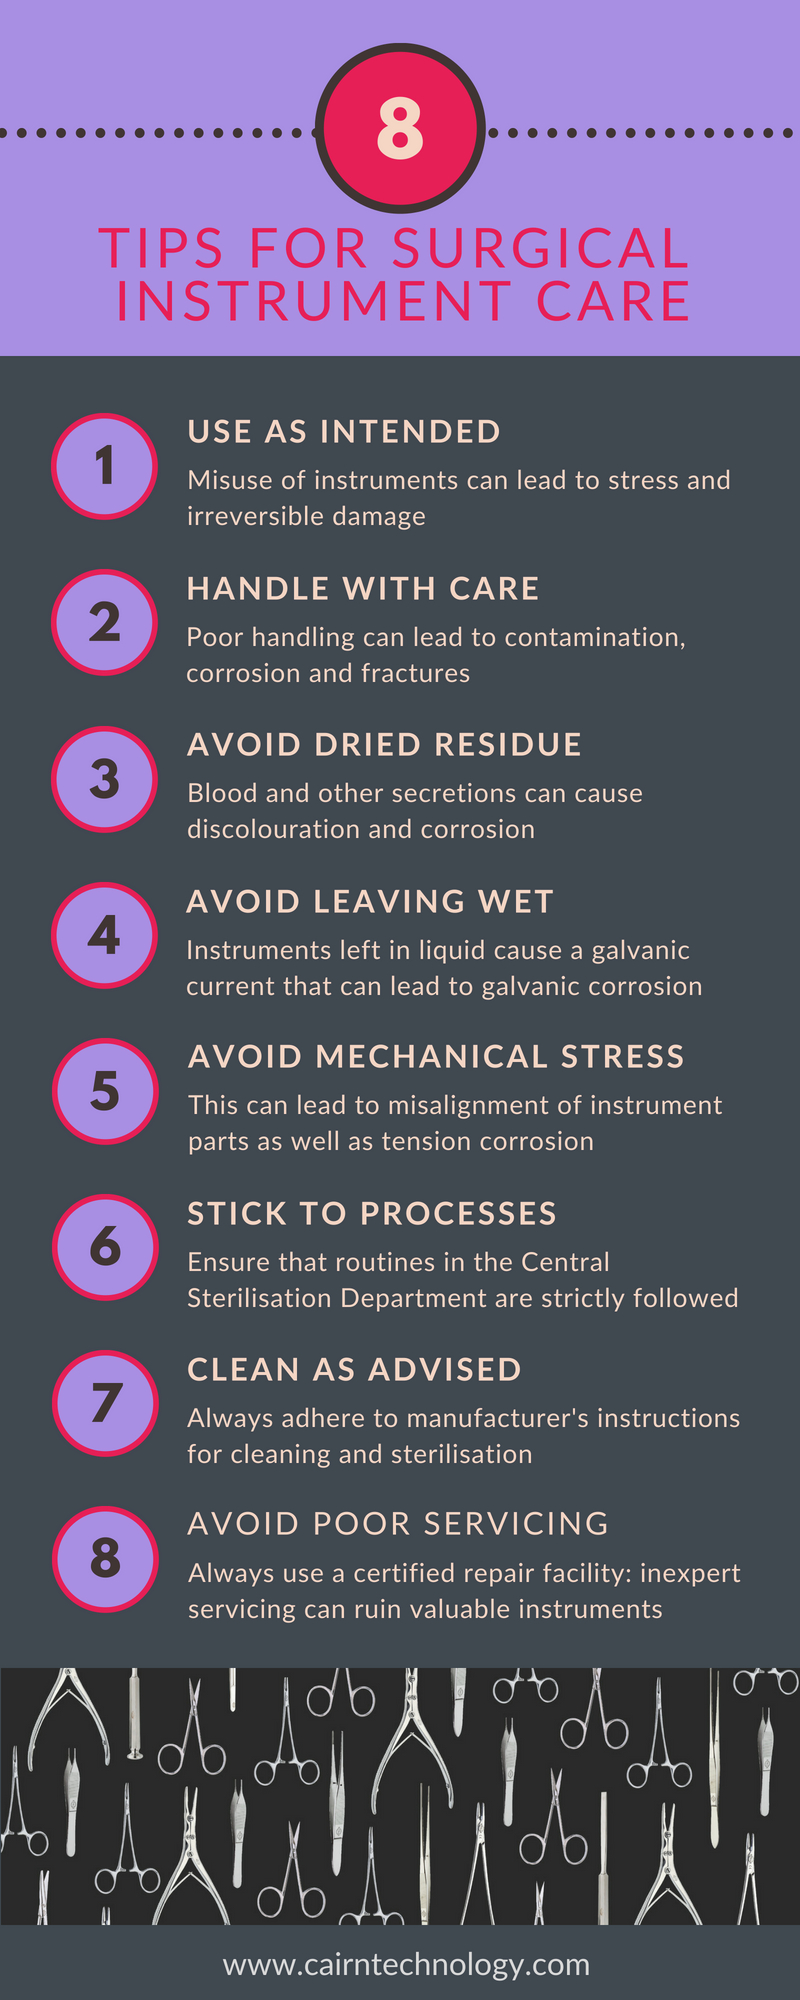 Tips for Surgical Instrument Care Infographic.jpg